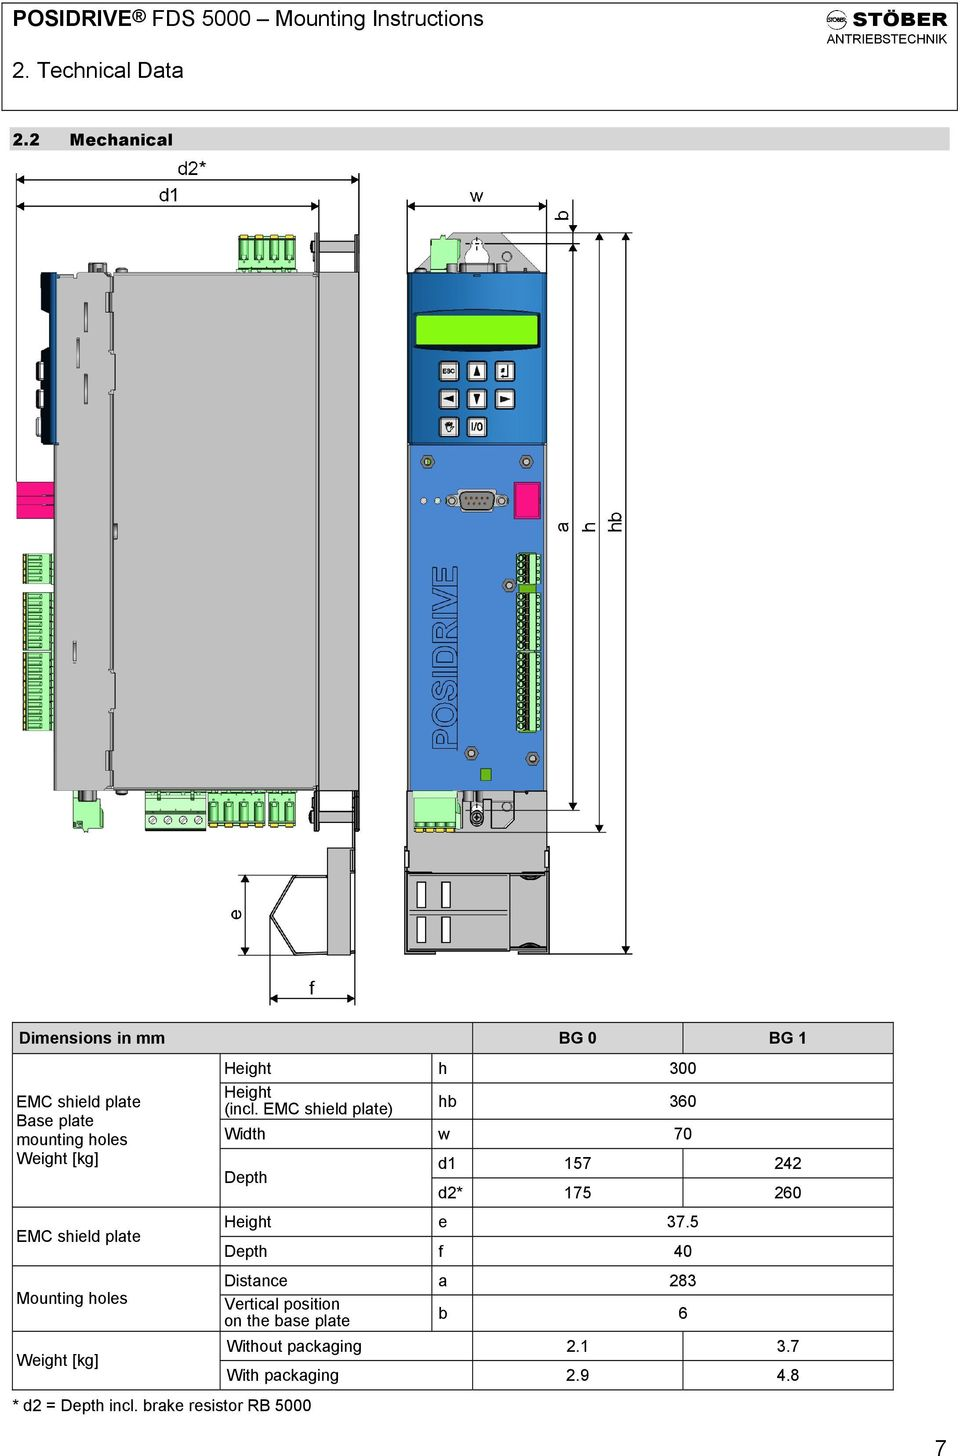 Posidrive Fds 5000 Mounting Instructions Pdf Uvw Ametek 9 Wire Motor Diagram Shield Plate Holes Weight Kg Height H 00 Incl